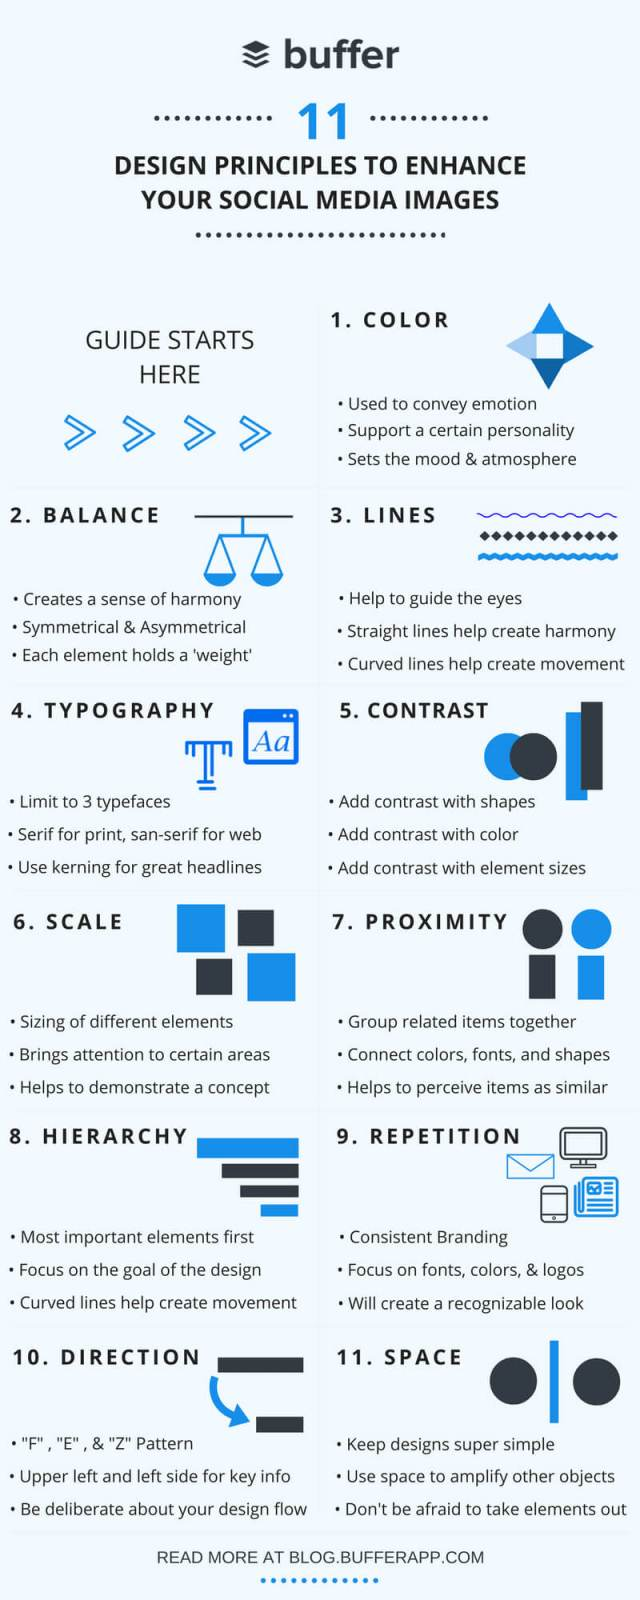 Principles to Improve Your Social Media Images Infographic compressed